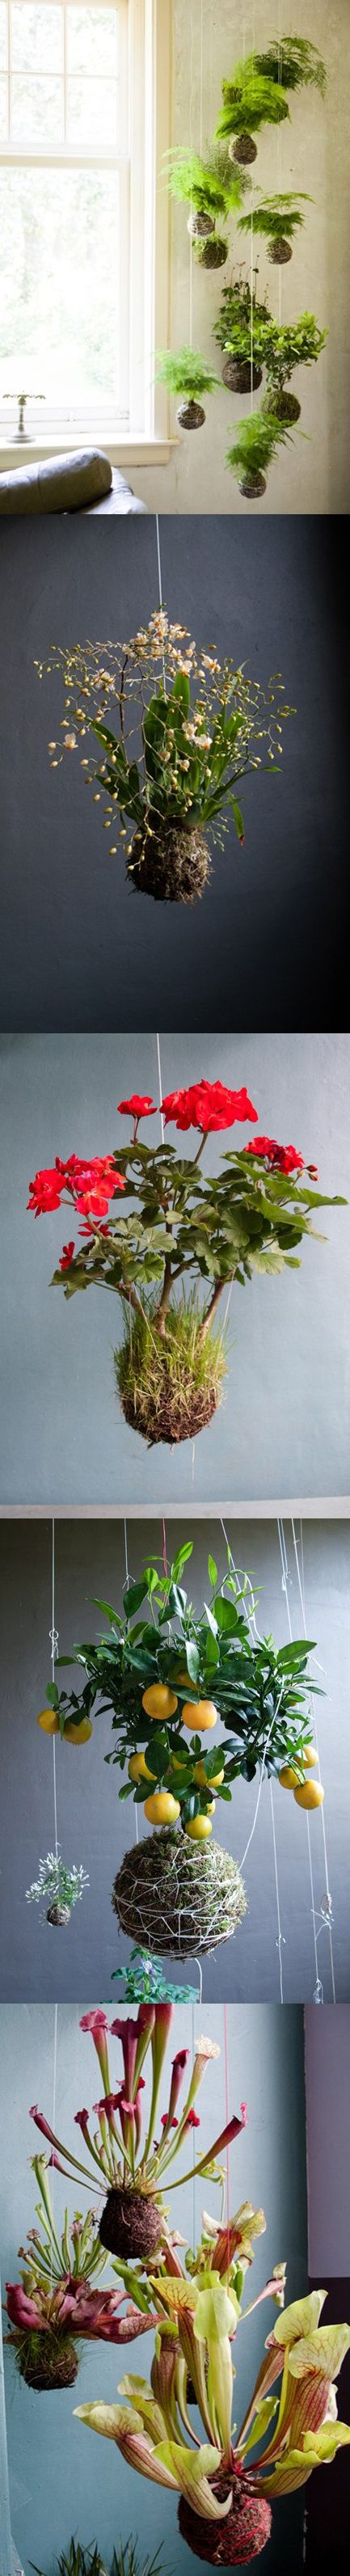 hanging garden ideas